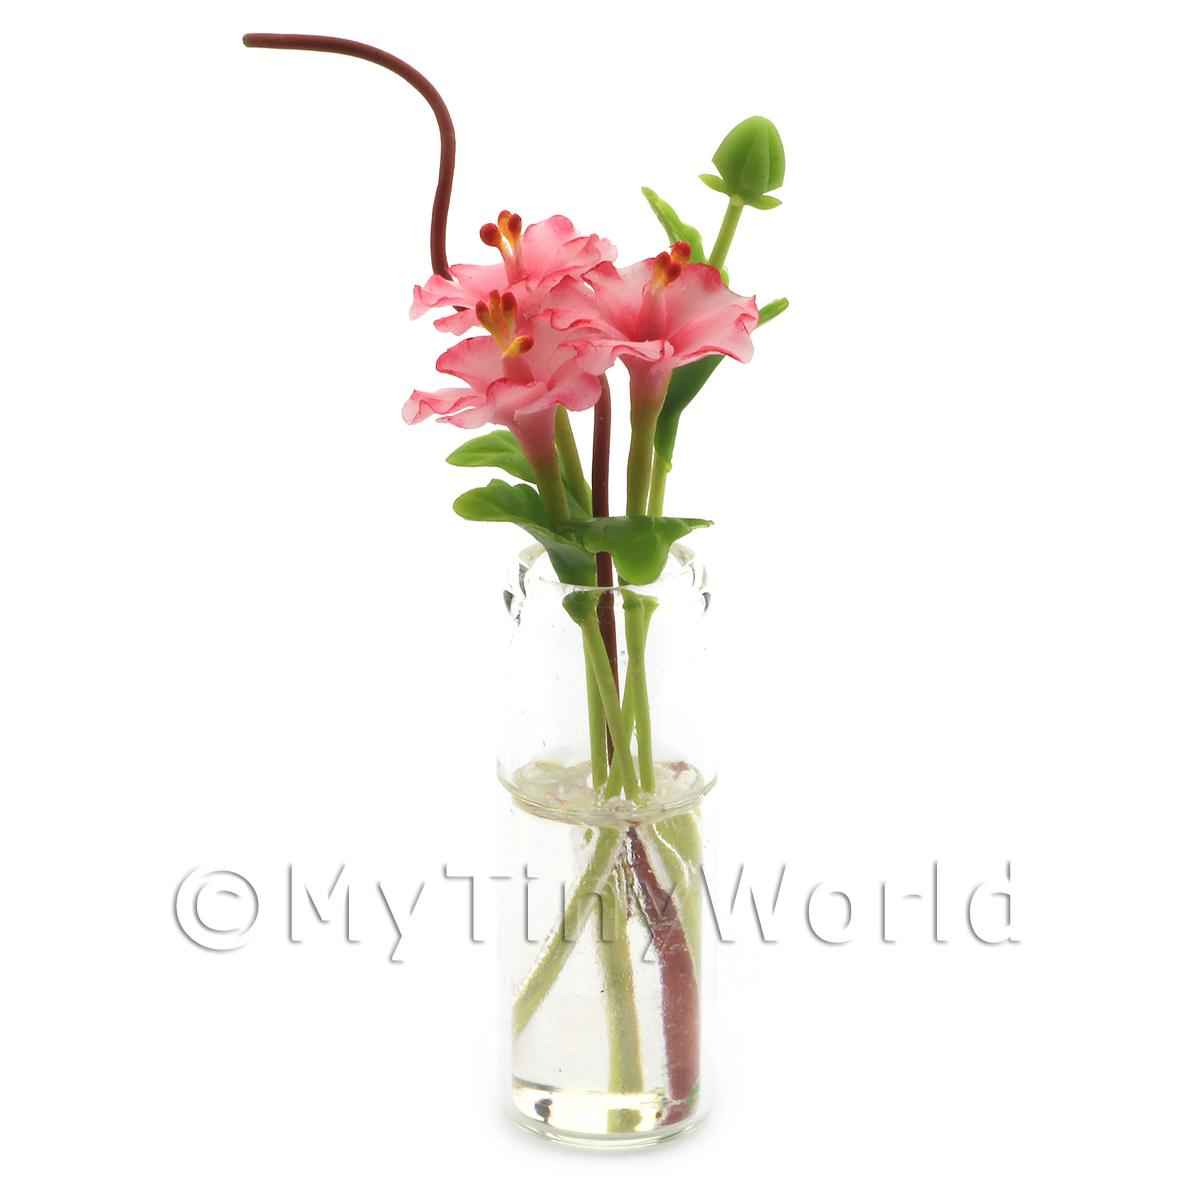 4 Miniature Pink Cut Flowers in a Glass Vase